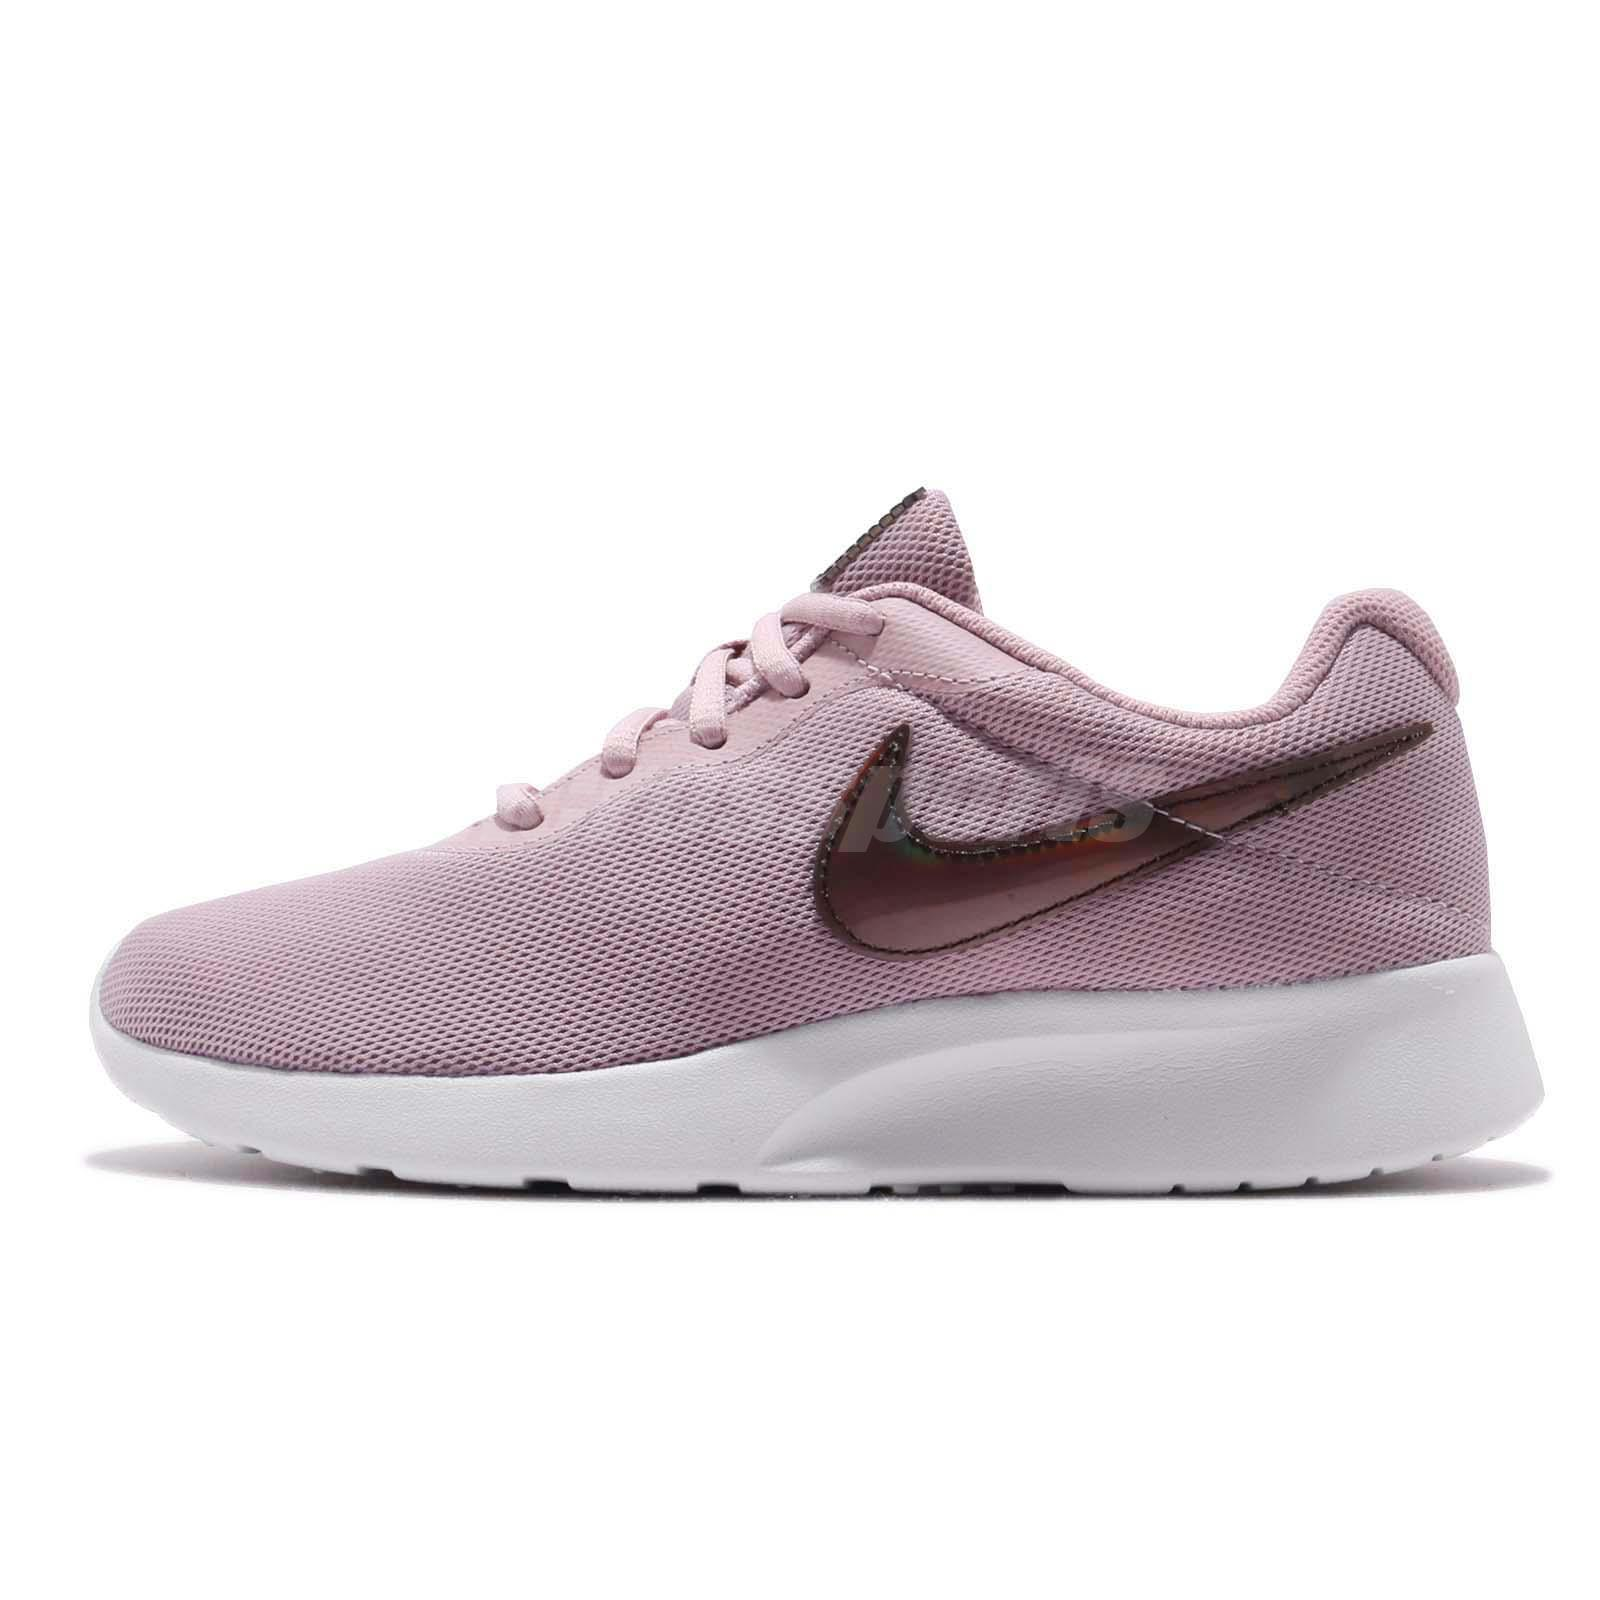 ee9064e3ea9 Nike Wmns Tanjun Plum Chalk White Women Running Casual Shoes Sneakers  812655-503